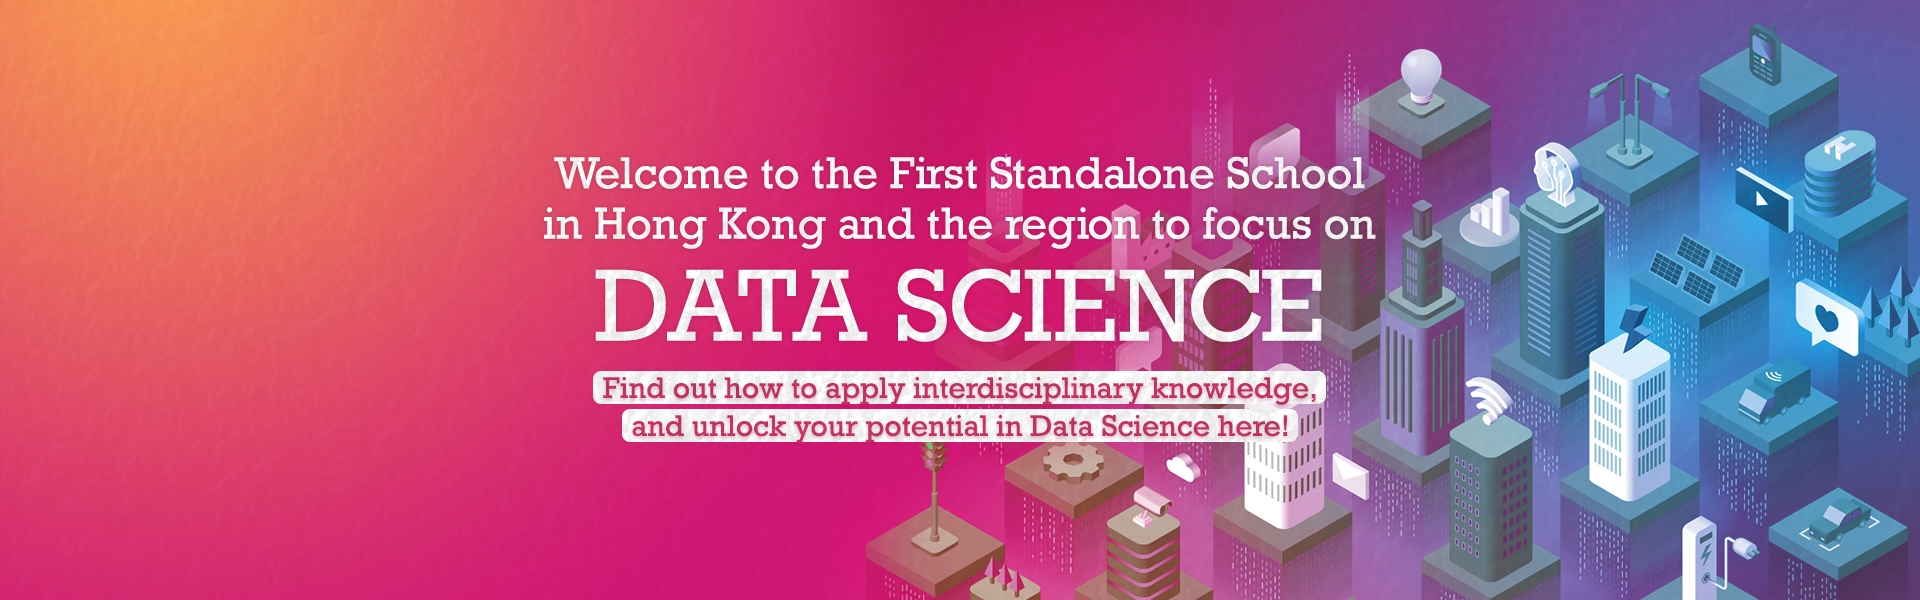 Undergraduate Programmes - Data Science